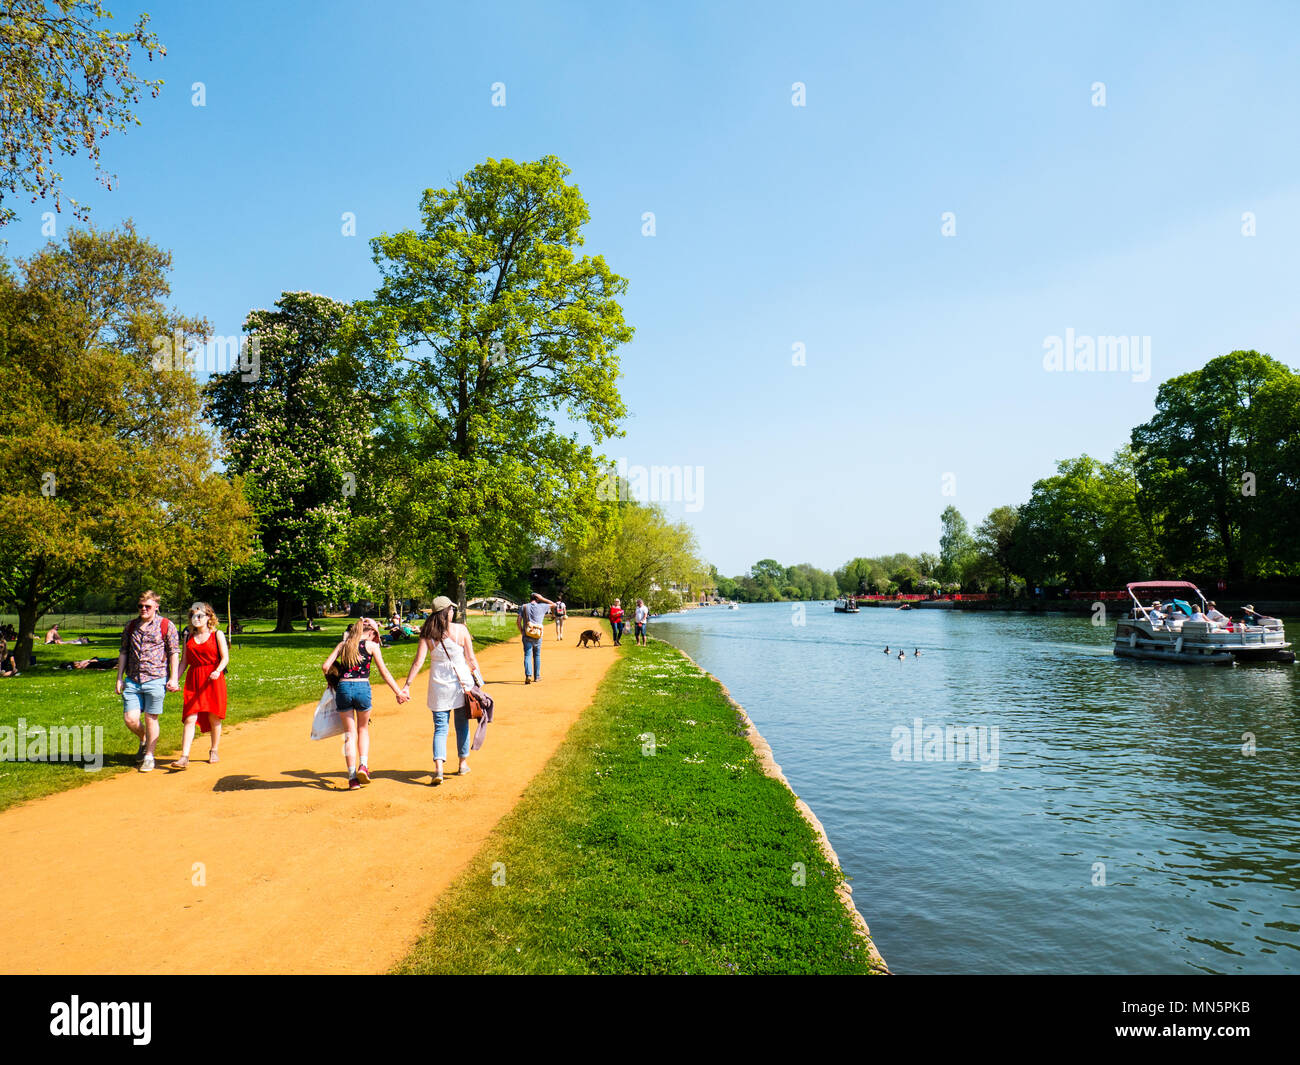 People Walking, Summer Day, Christchurch Meadow Walk, River Thames, Oxford, Oxfordshire, England, UK, GB. - Stock Image